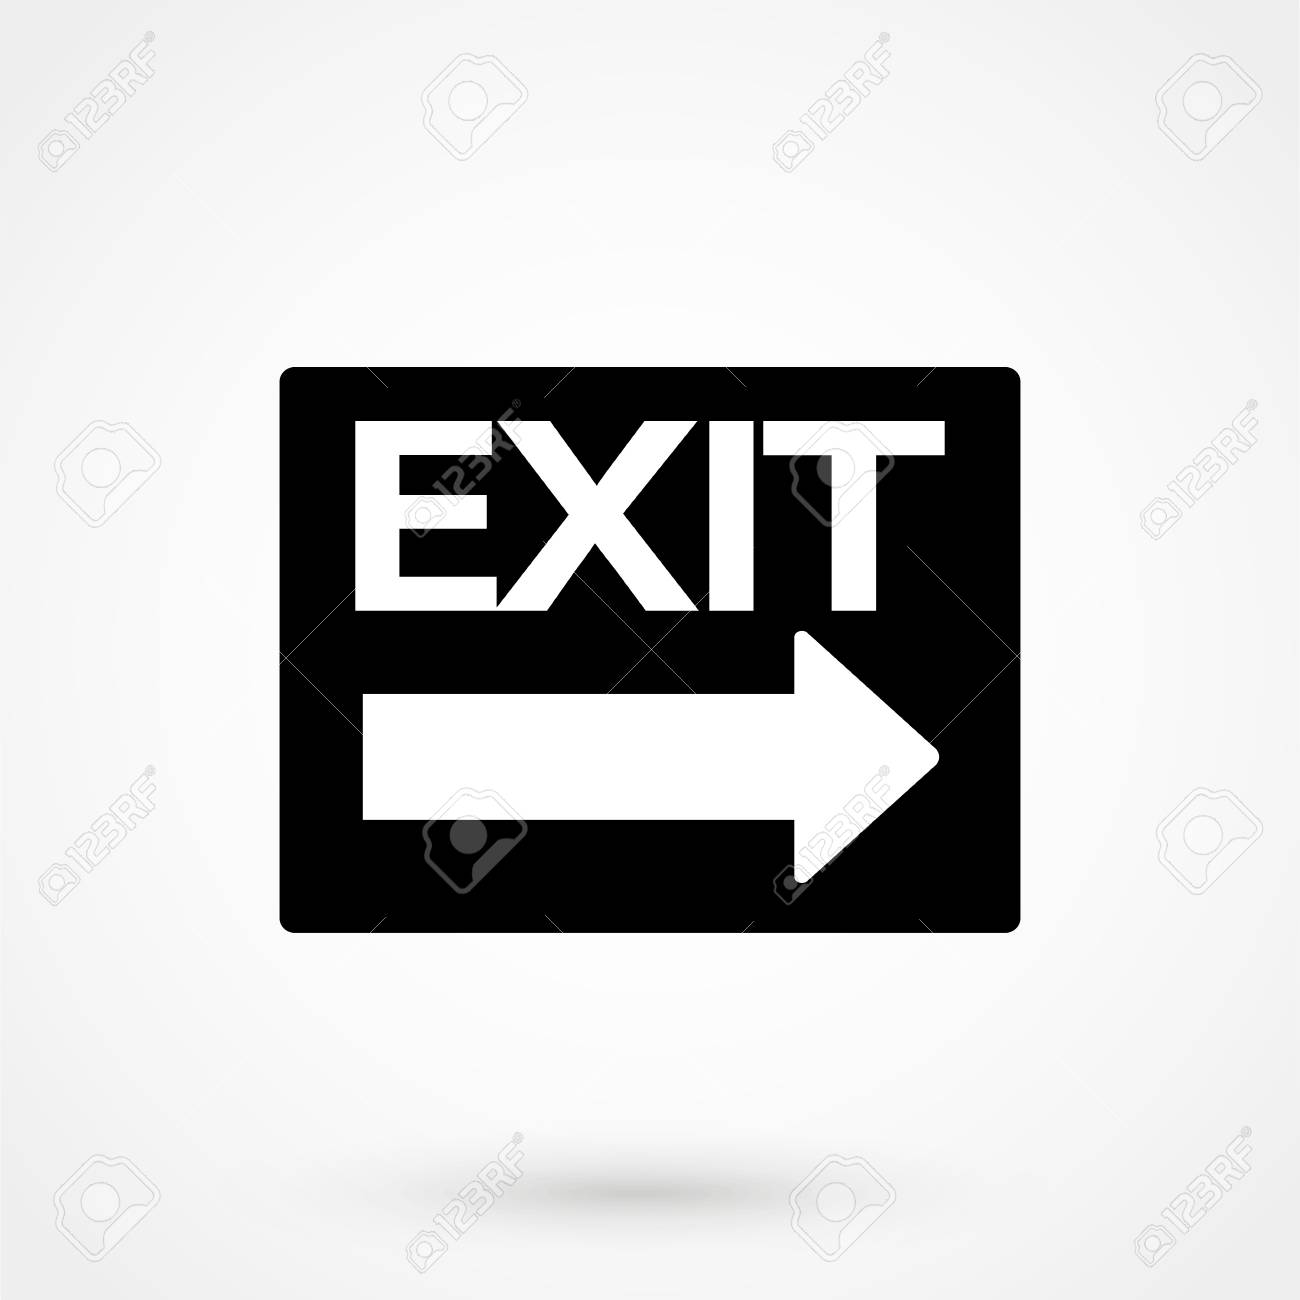 Exit sign vector icon festival sign gate symbol royalty free exit sign vector icon festival sign gate symbol stock vector 89834284 buycottarizona Images